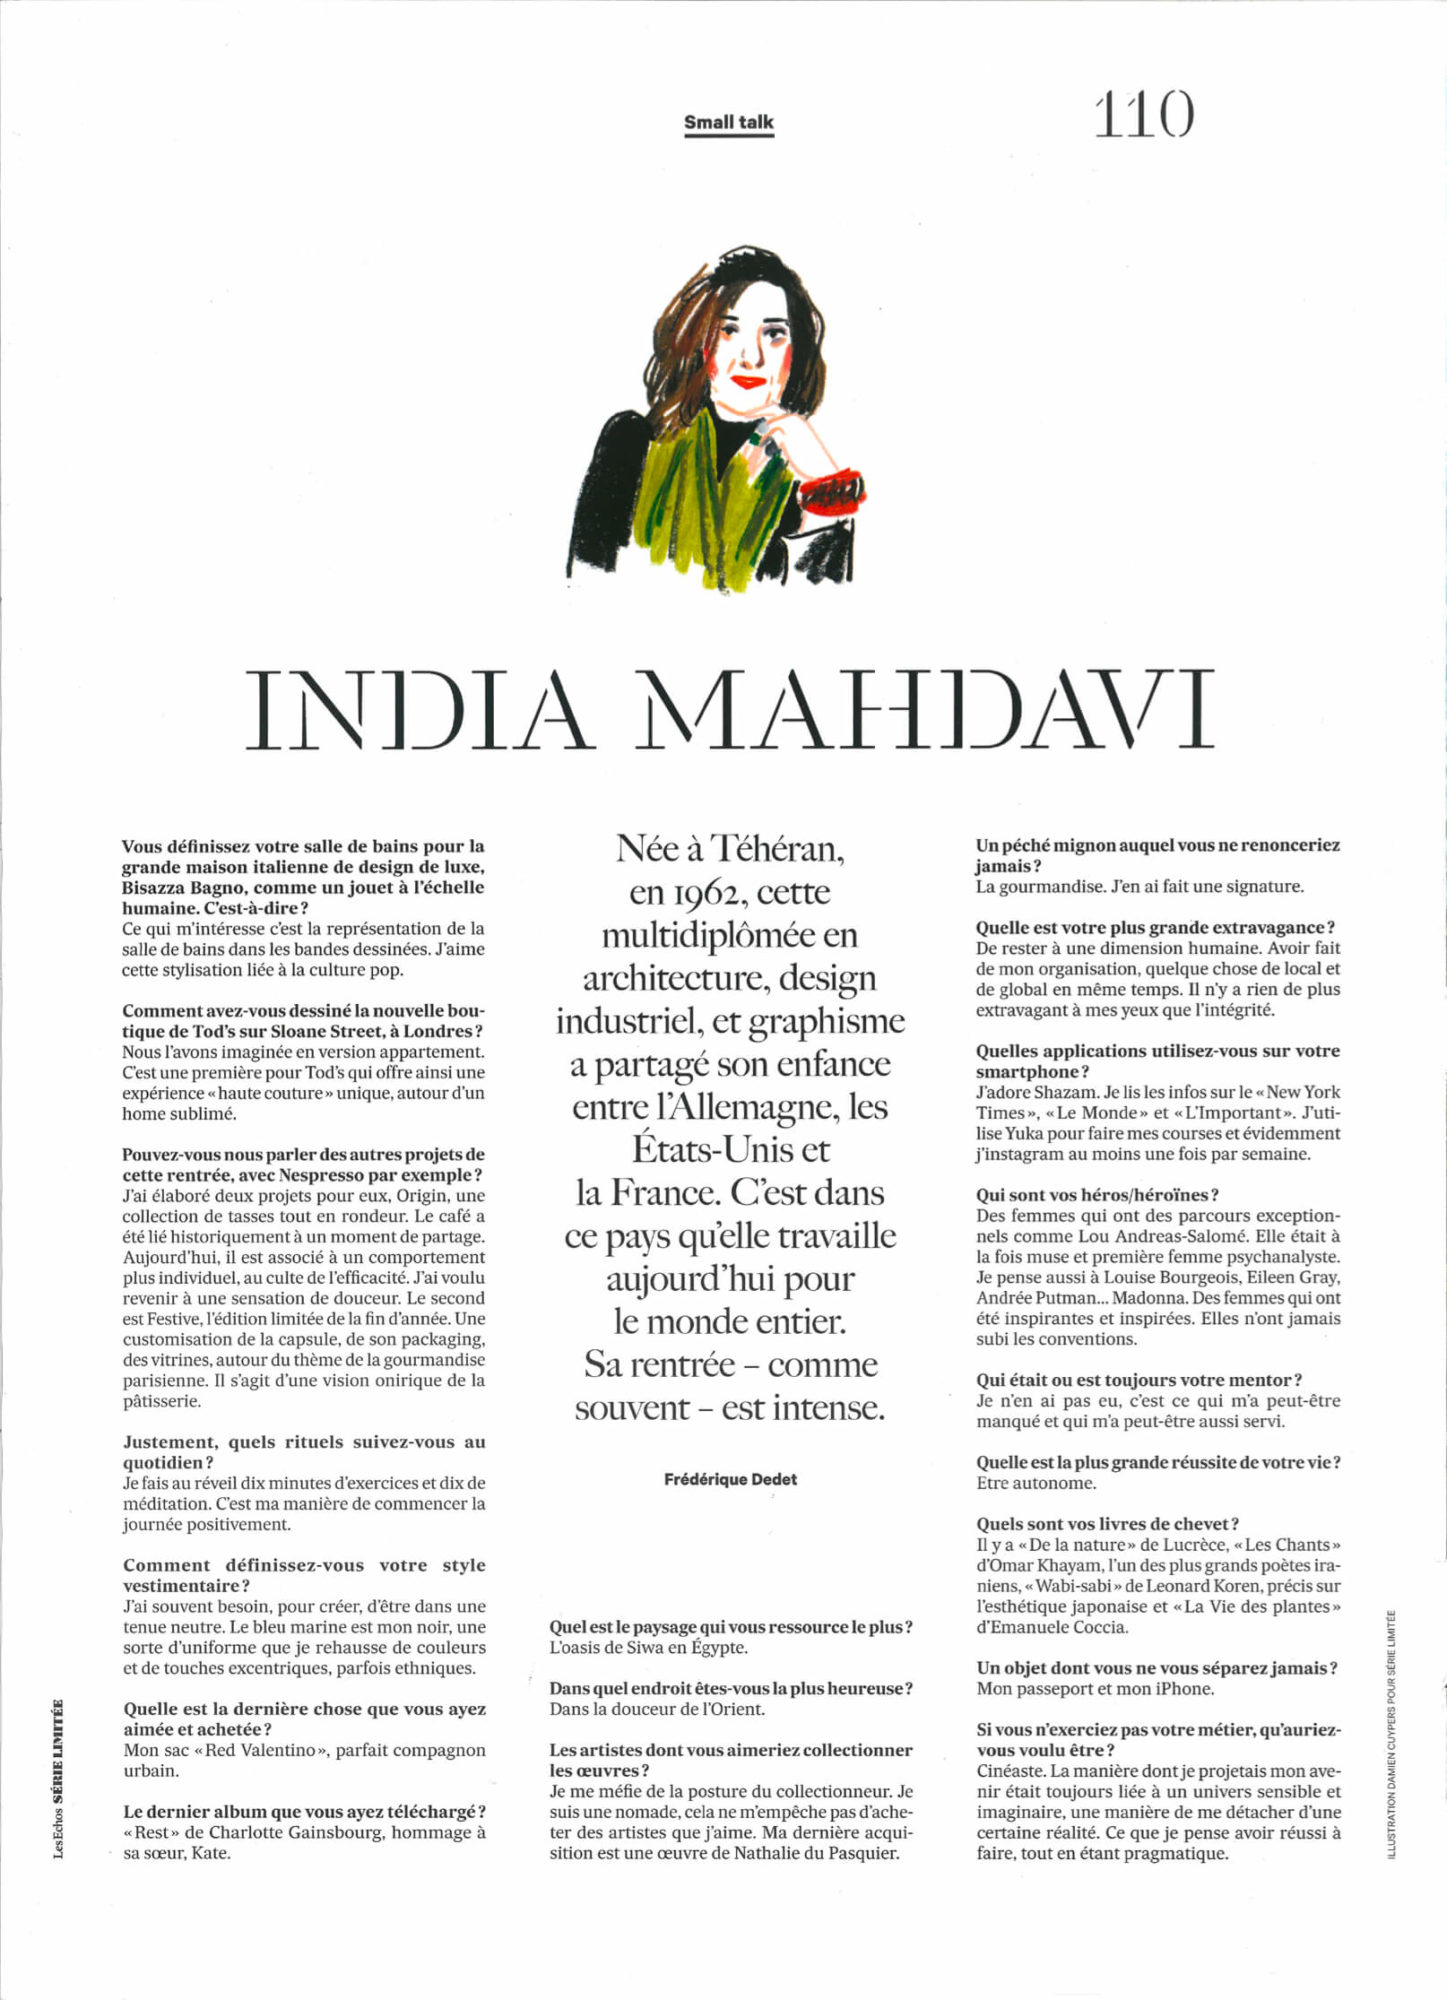 small talk - India Mahdavi